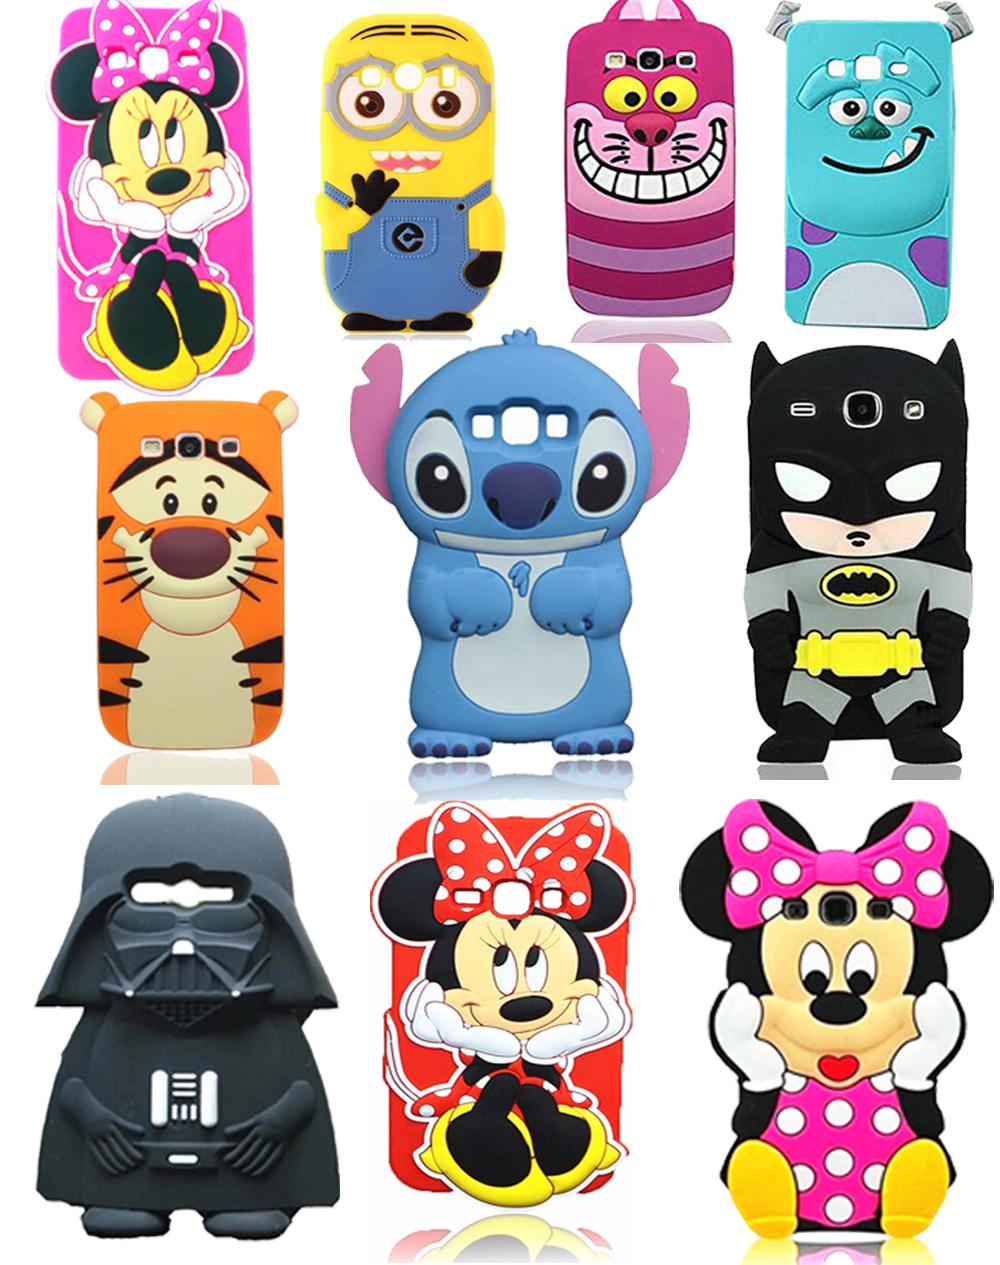 3D Cartoon Characters Soft Silicone Case for Samsung